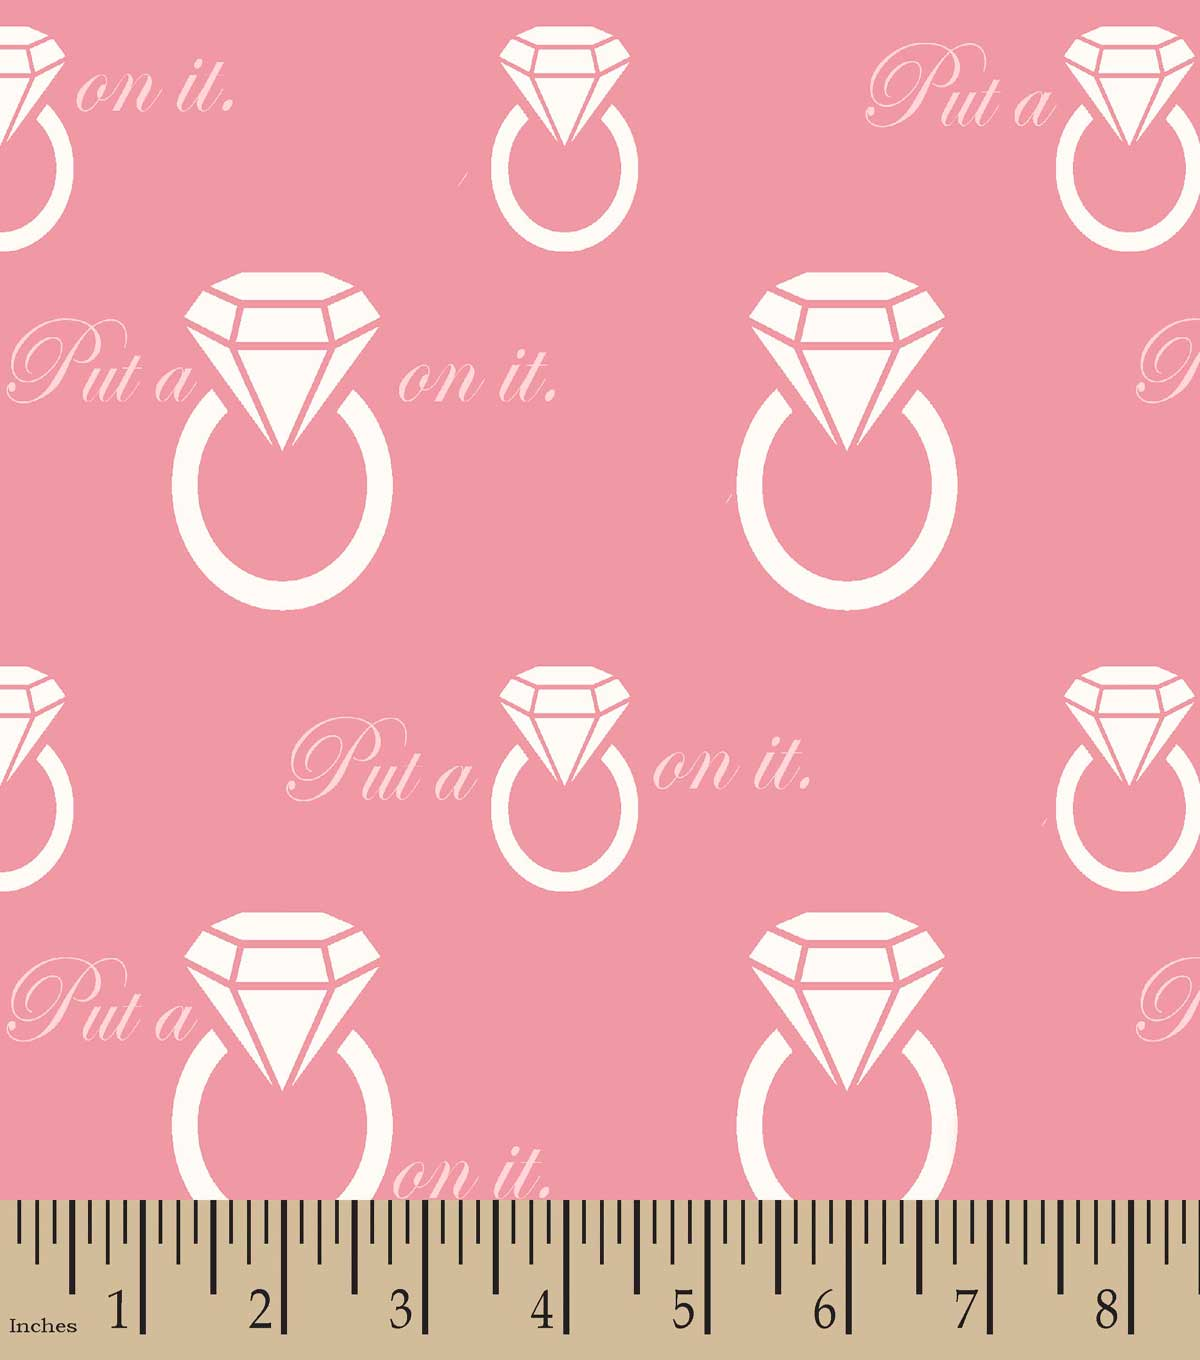 Put a Ring On It Print Fabric